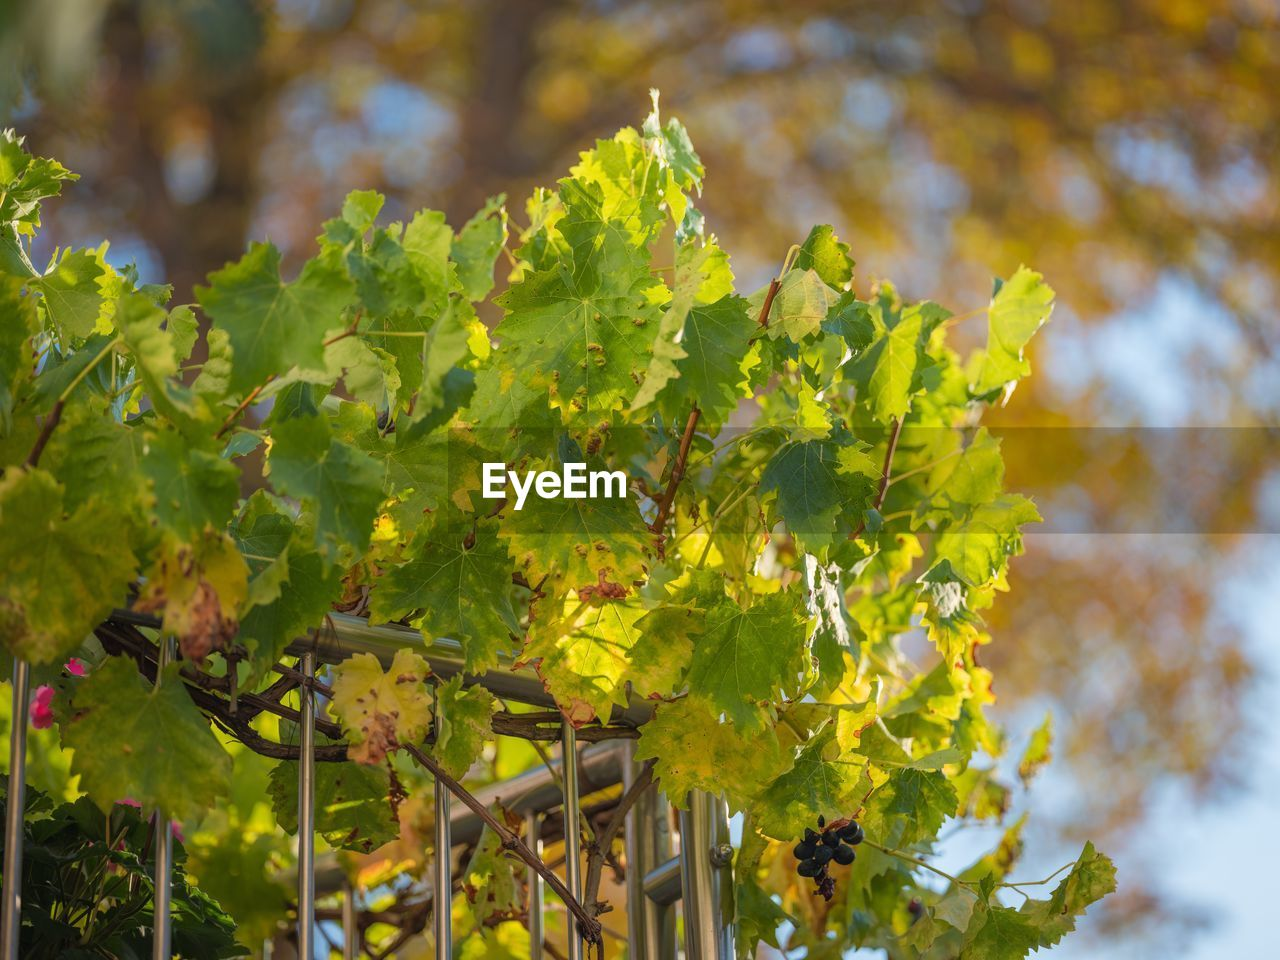 growth, plant, plant part, leaf, beauty in nature, day, freshness, nature, focus on foreground, food and drink, green color, food, tree, flower, no people, agriculture, close-up, flowering plant, healthy eating, outdoors, winemaking, ripe